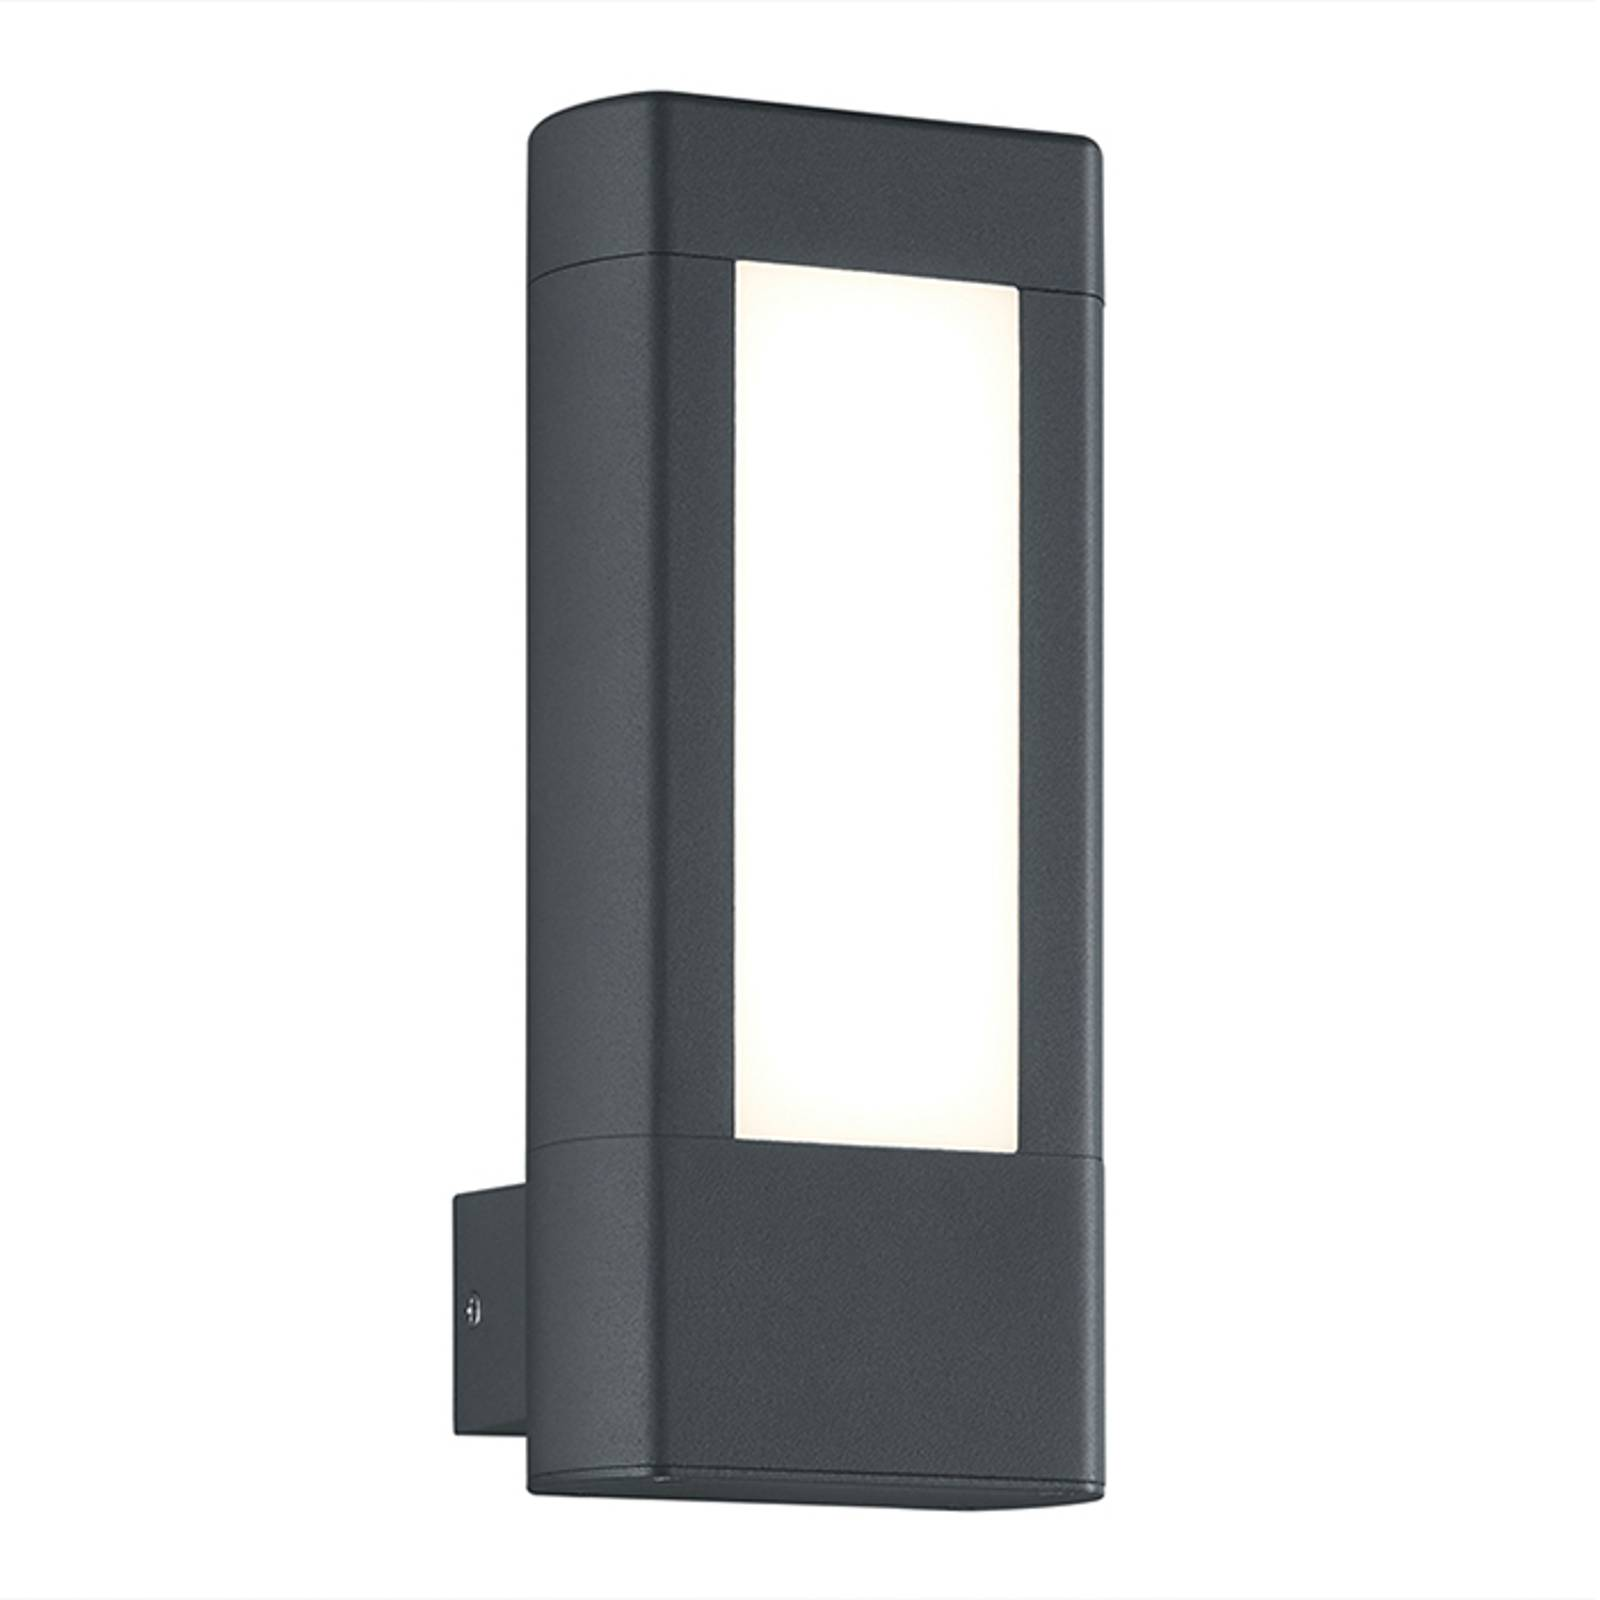 Bright LED outdoor wall light Rhine from Trio Lighting